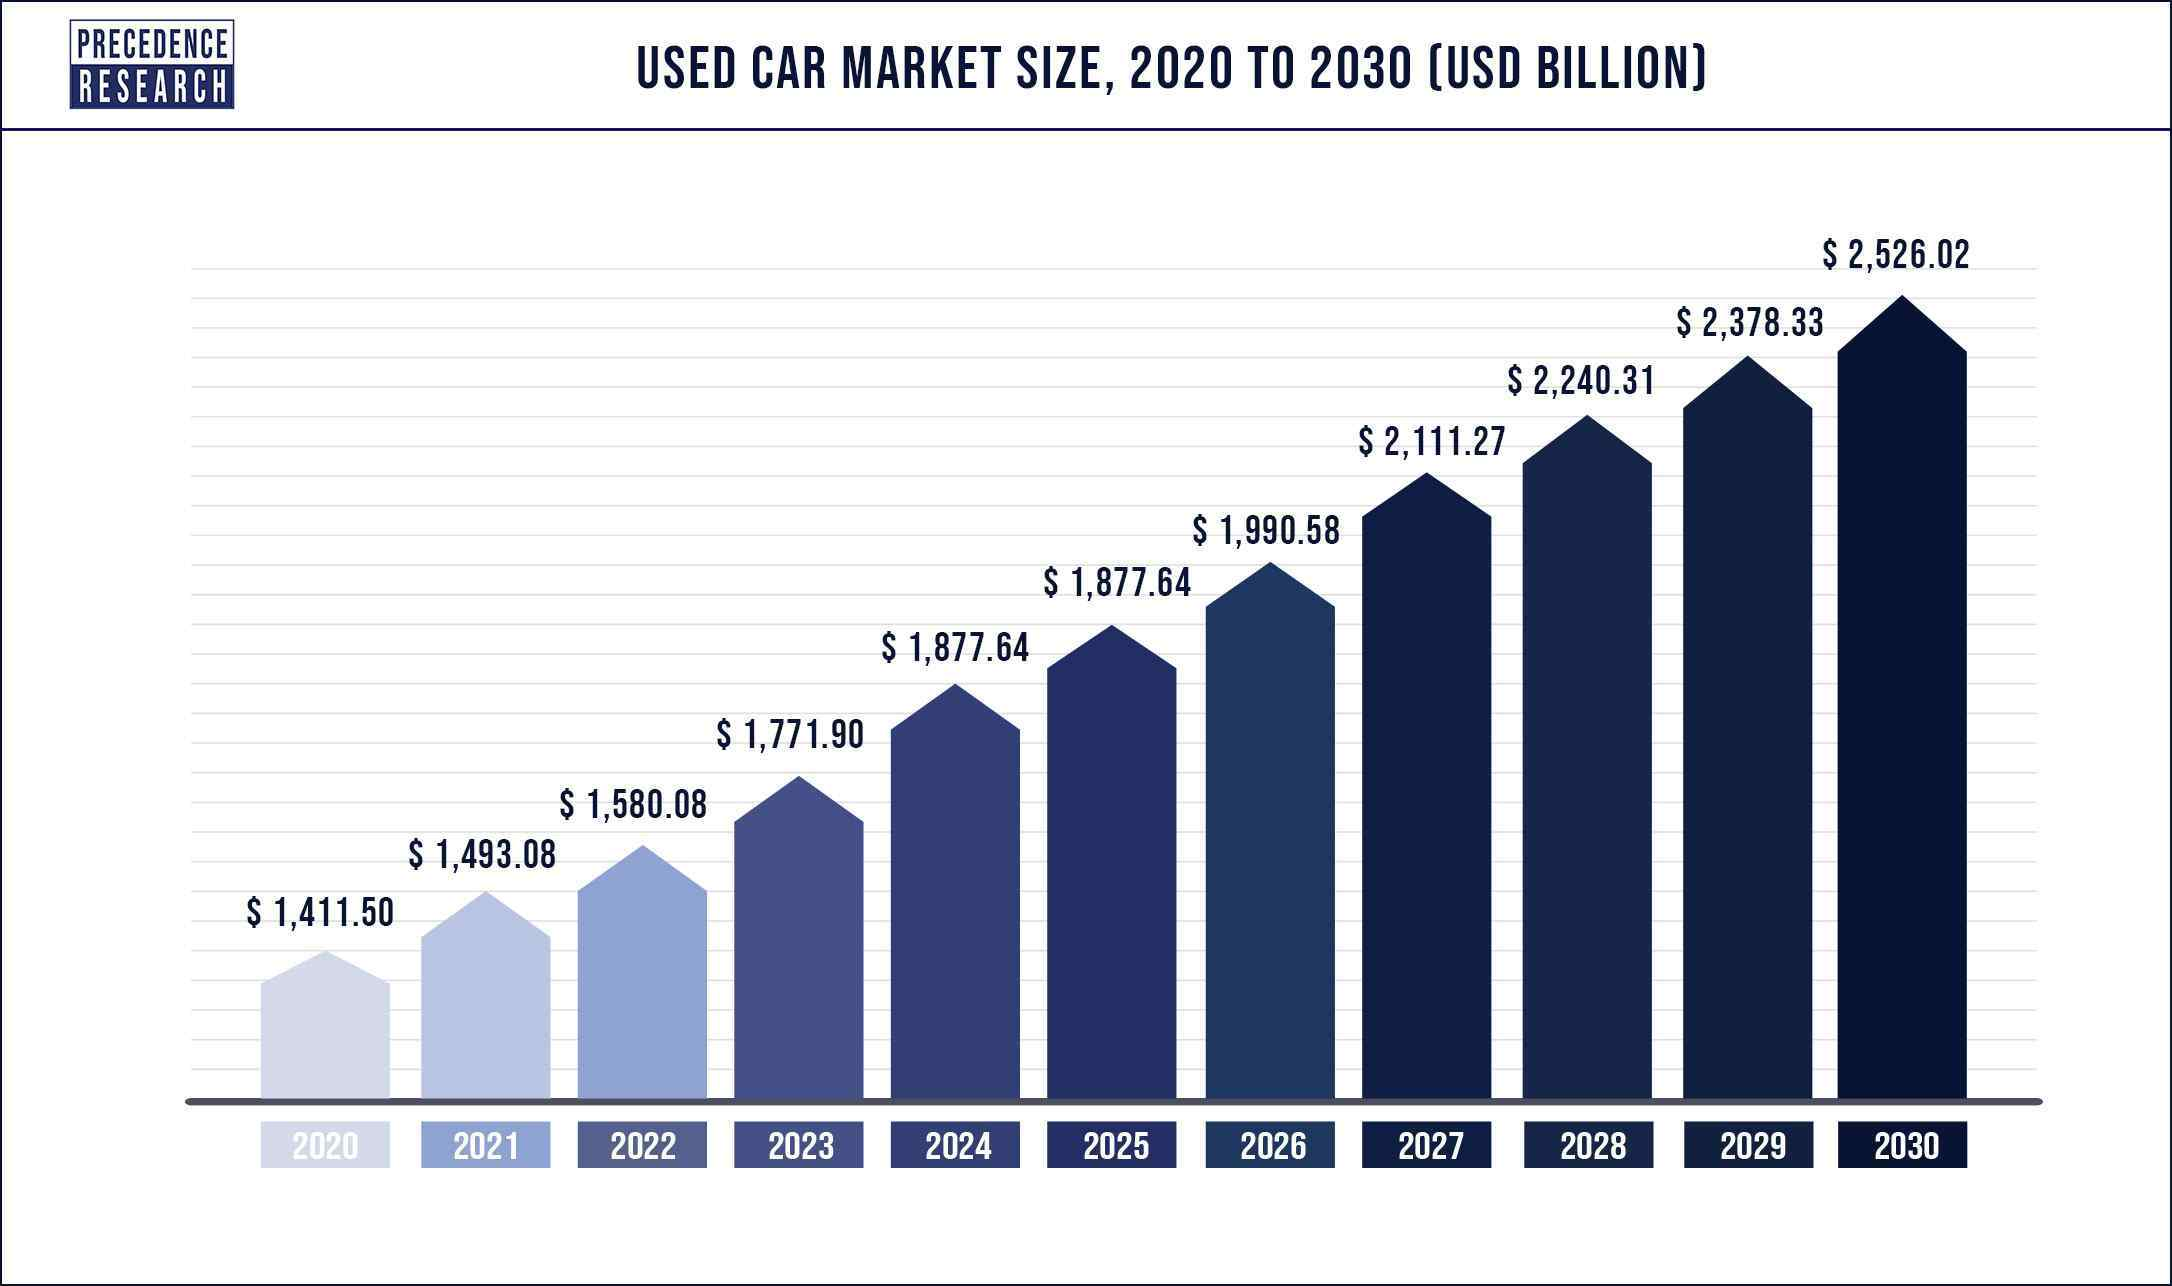 Used Car Market Size 2020 to 2030